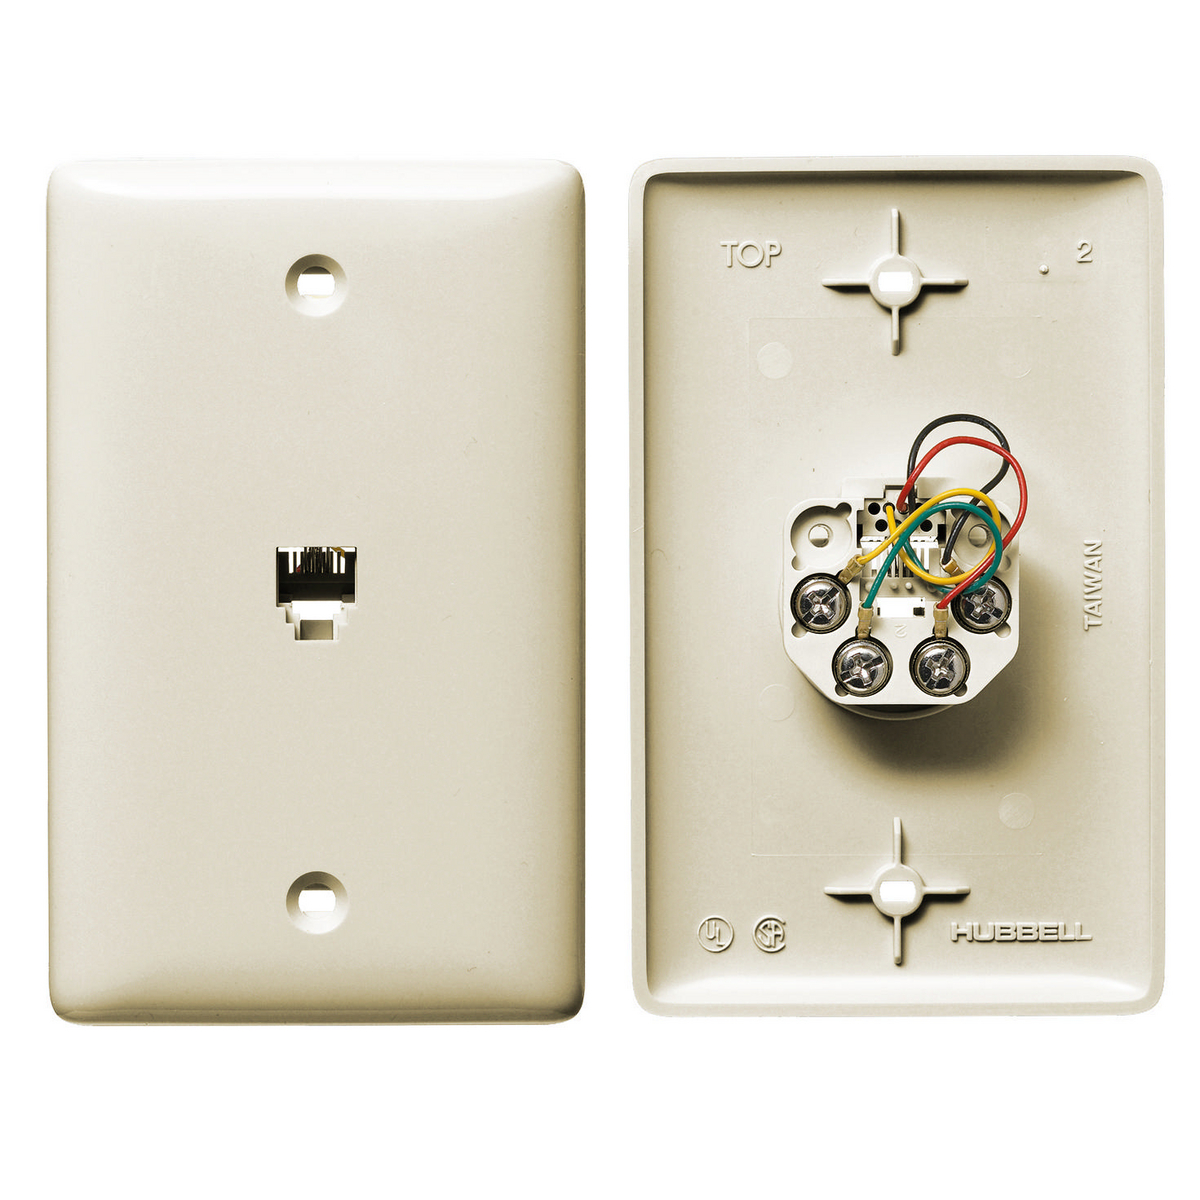 Hubbell NS730LA 1-Gang Light Almond Thermoplastic Standard 1-RJ11 Molded-In Data Communication Plate